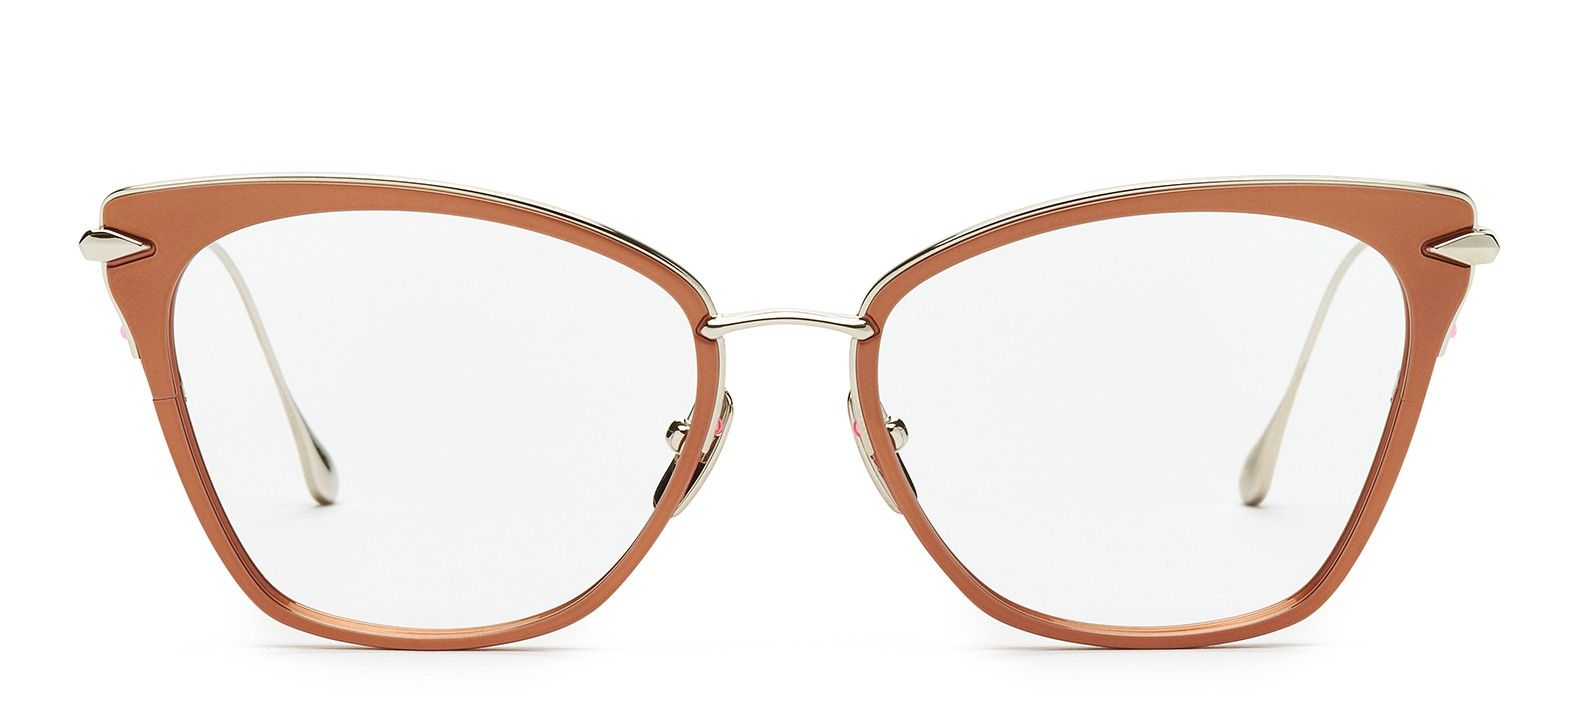 The ARISE optical glasses by DITA Eyewear in Rose Gold. | Glasses ...